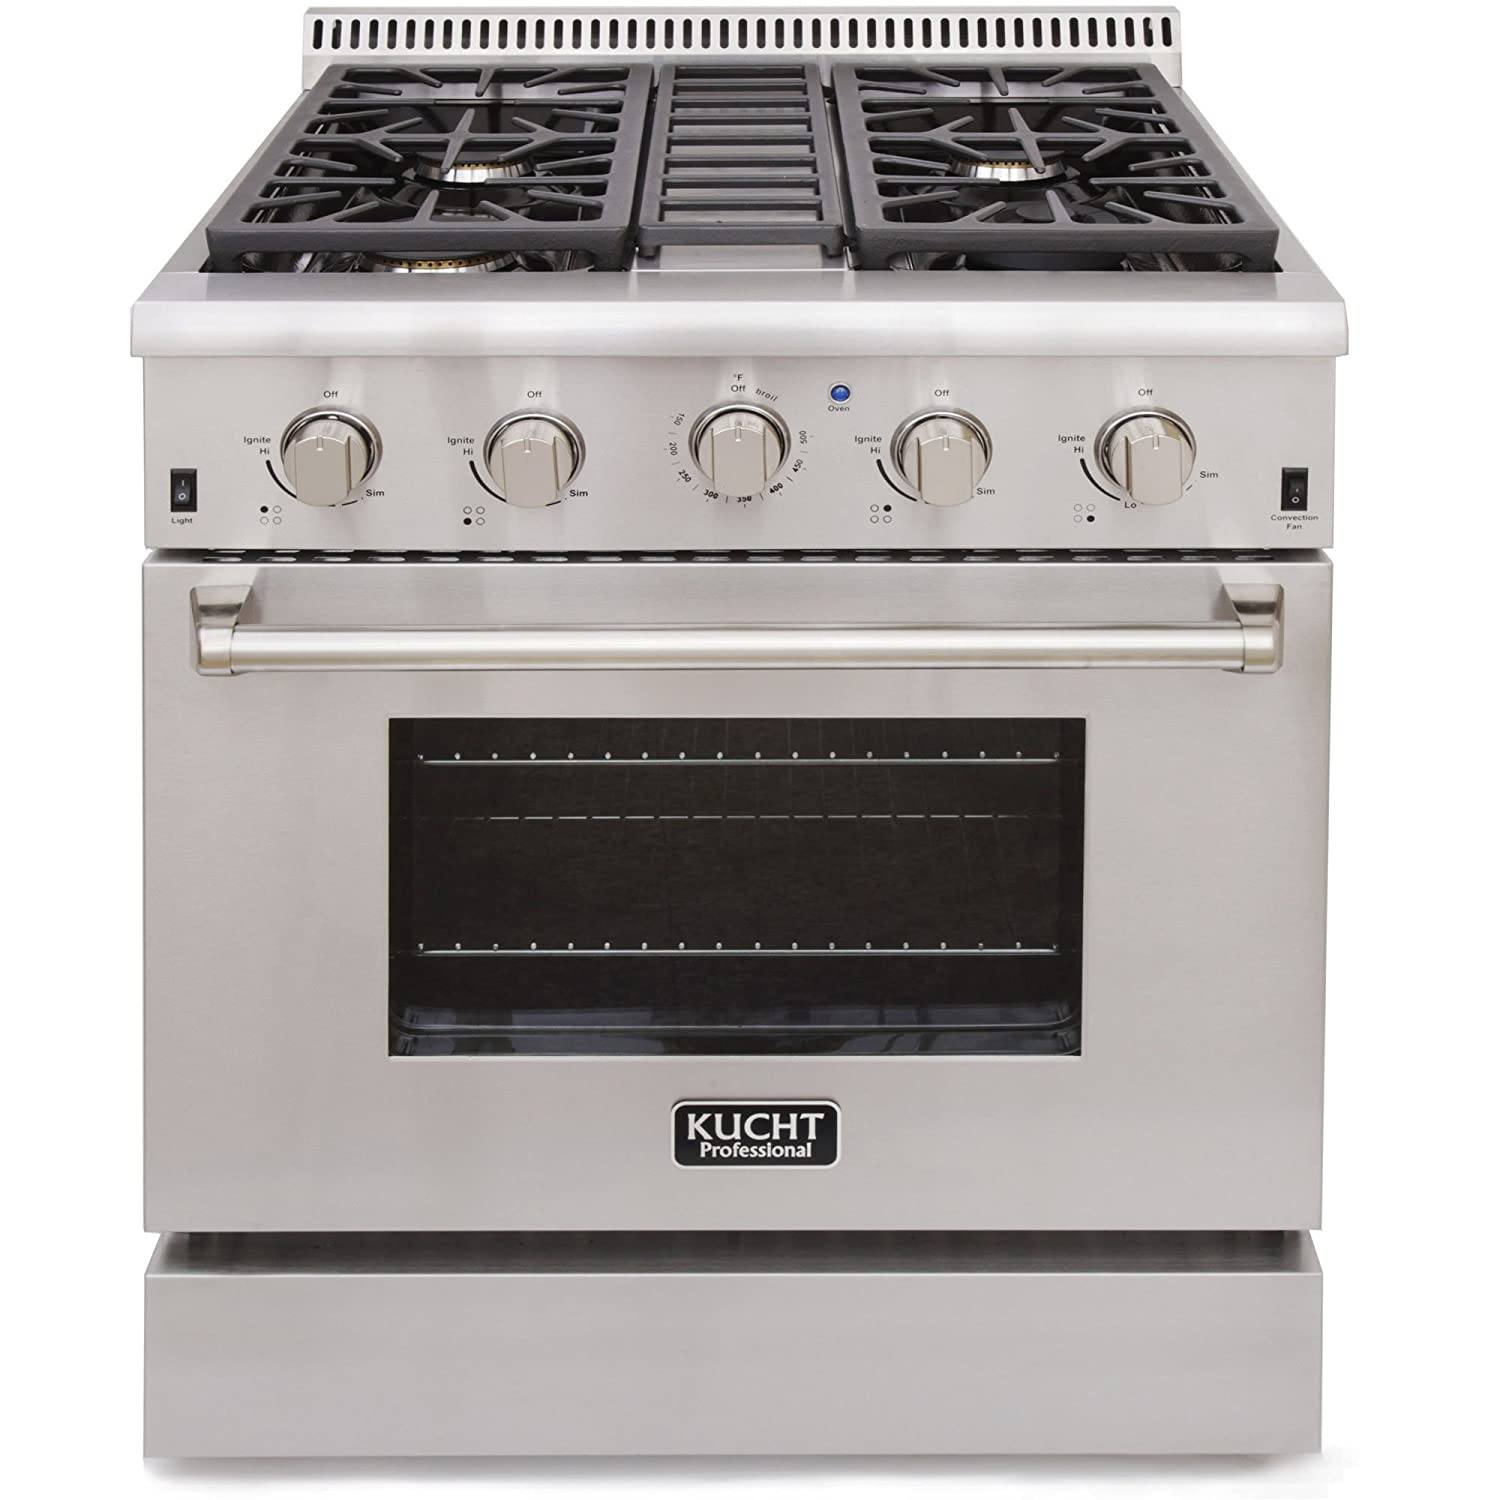 4.Kucht KRG3080U Professional 4.2 cu. ft. Natural Gas Range with Sealed Burners and Convection Oven, Stainless Steel